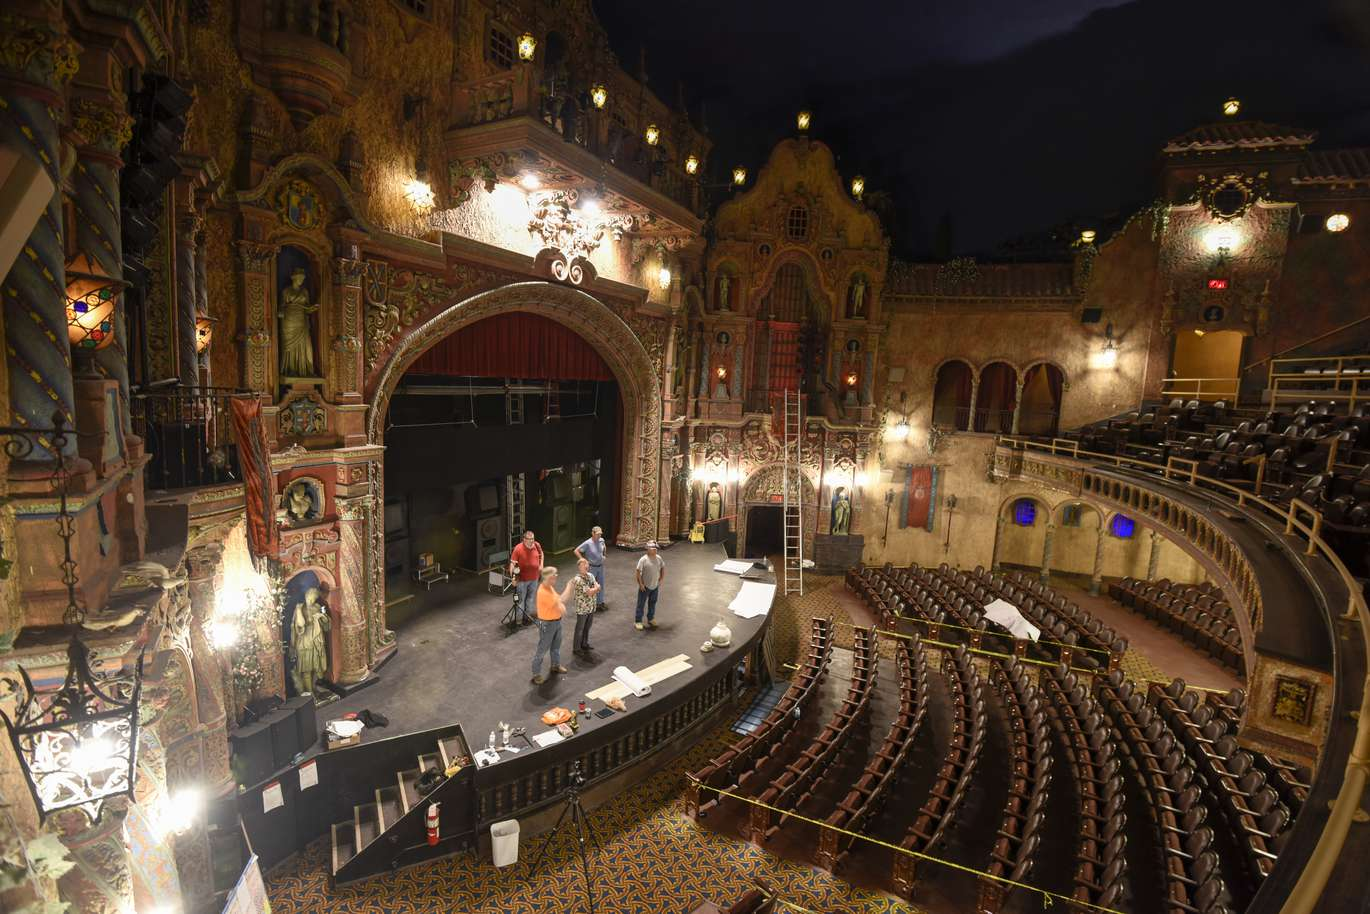 tampa theatre reopens after renovations tampa bay times